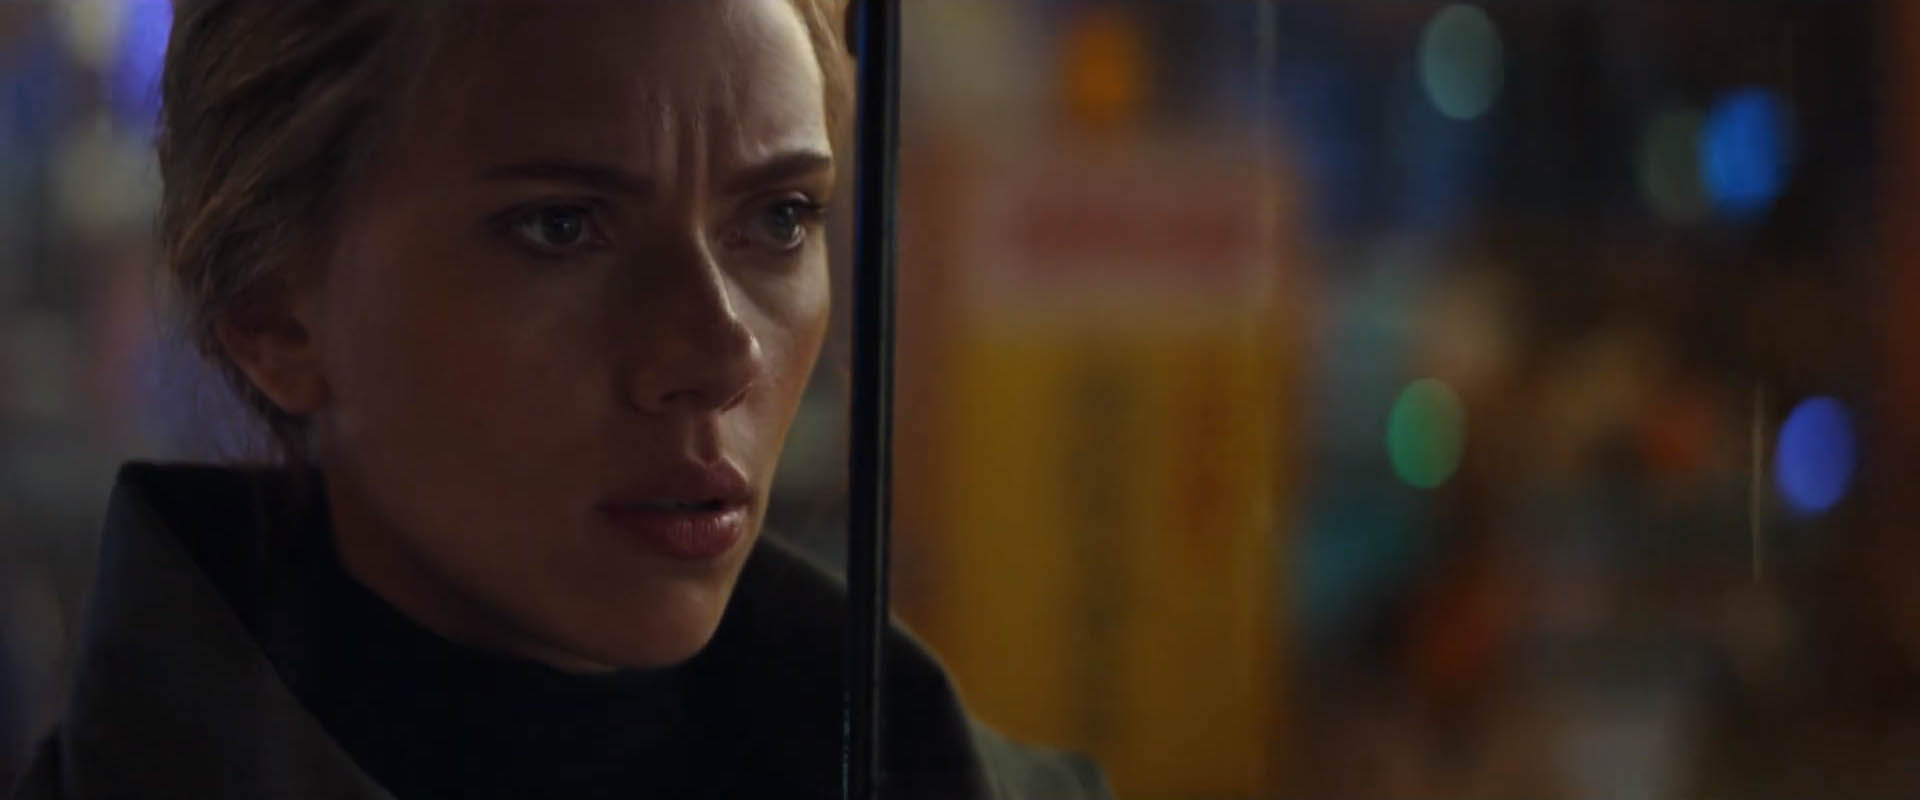 Avengers Endgame Trailer Gallery: Most Anticipated Movies Of 2019: Avengers: Endgame